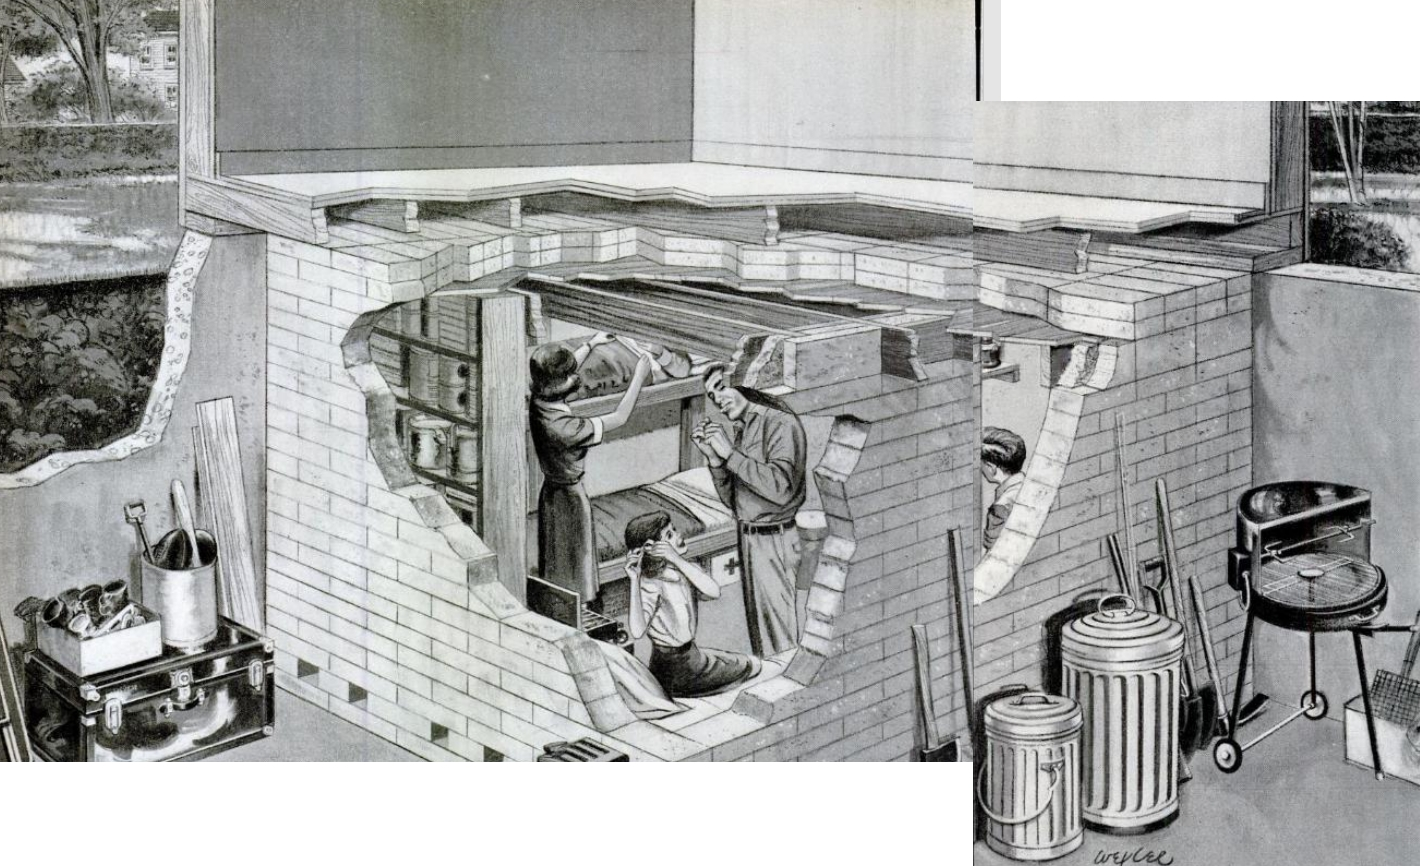 Basement Bomb Shelter, 1961